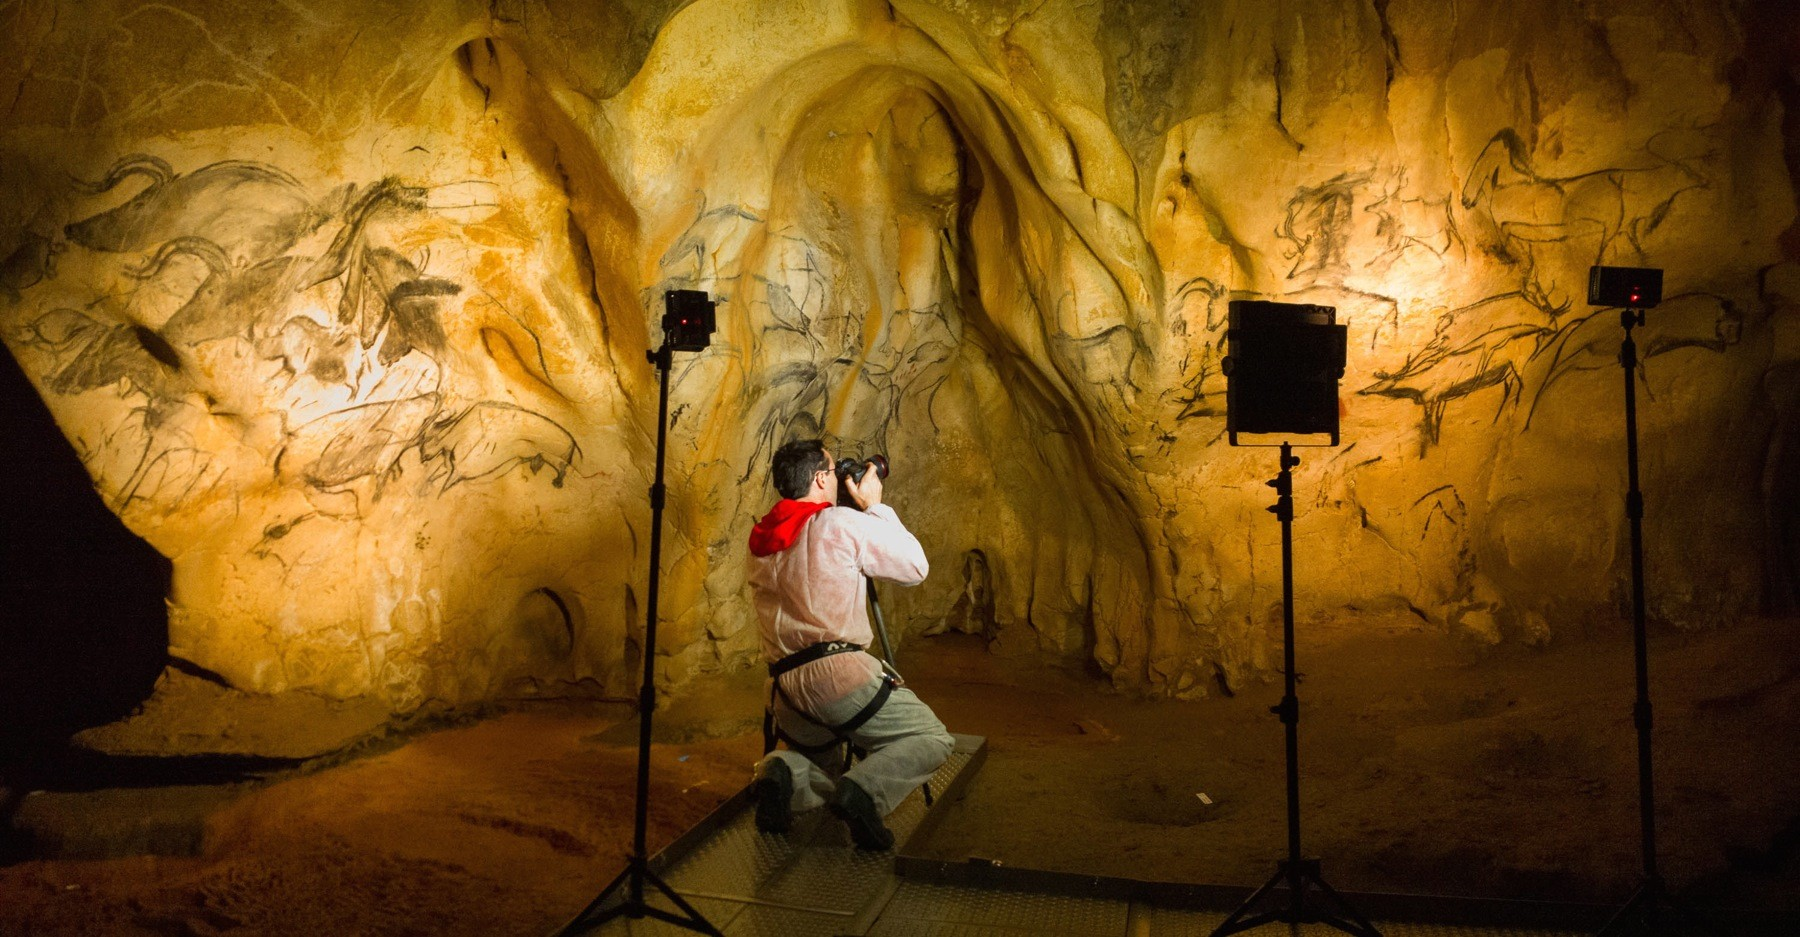 Stephen Alvarez photographs 36,000-year-old cave paintings in Chauvet-Pont-d'Arc, a cave in southern France. Photo by Stephen Alvarez